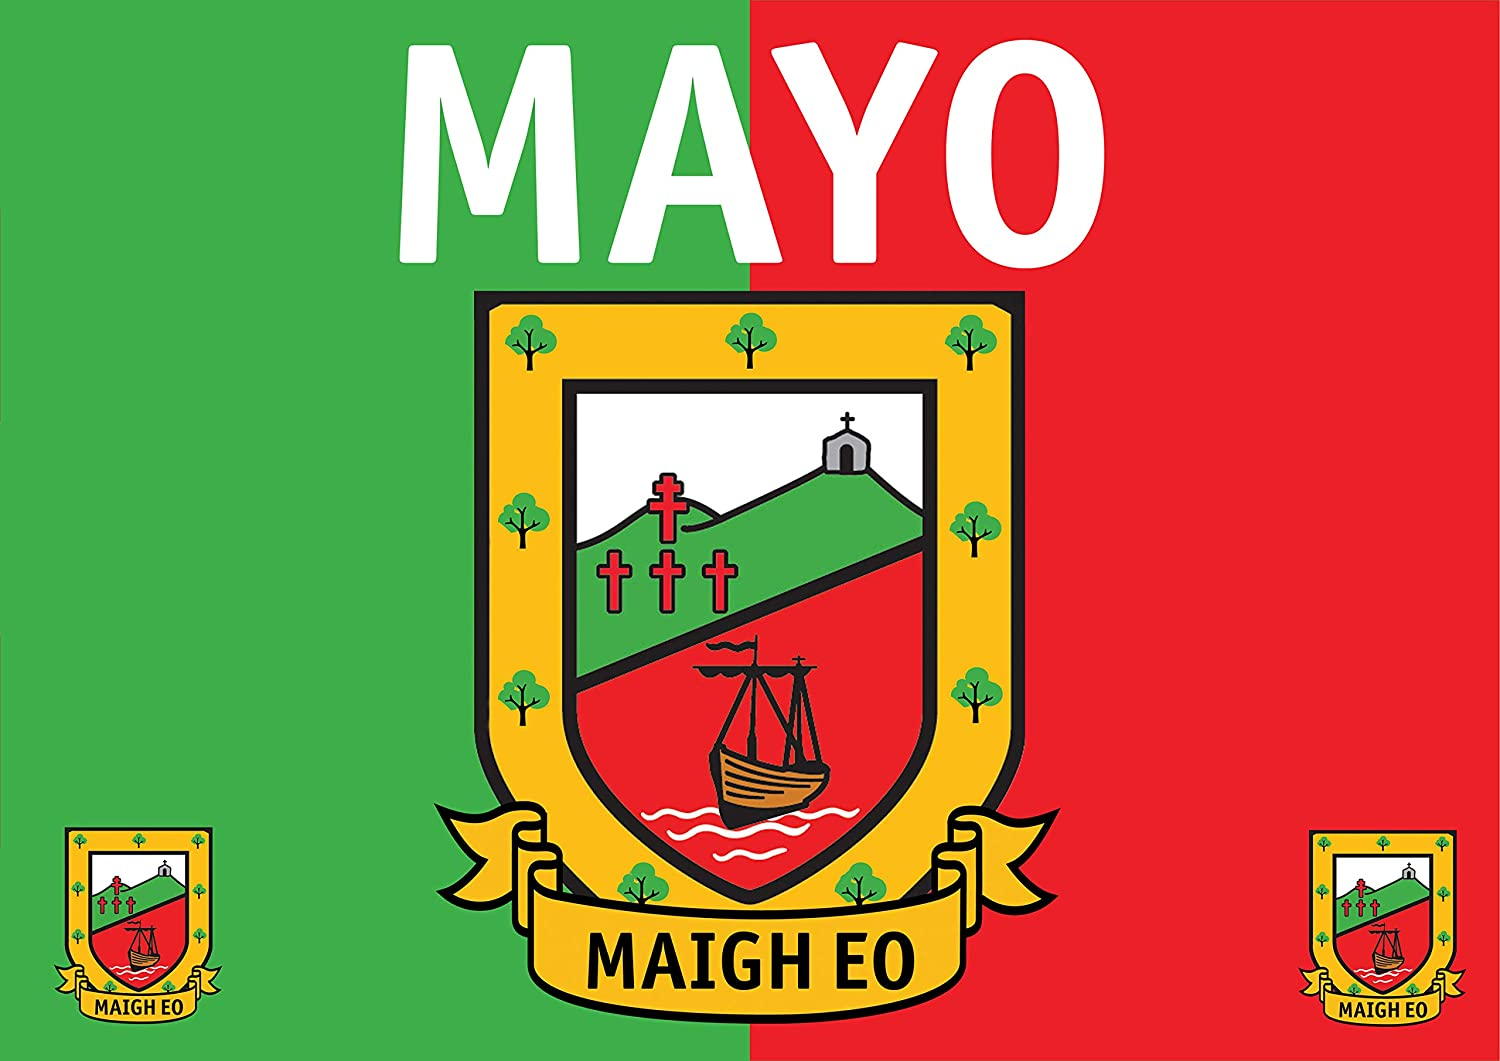 a3 poster county mayo maigh eo flag crest size 11 7 16 5 inches landscape